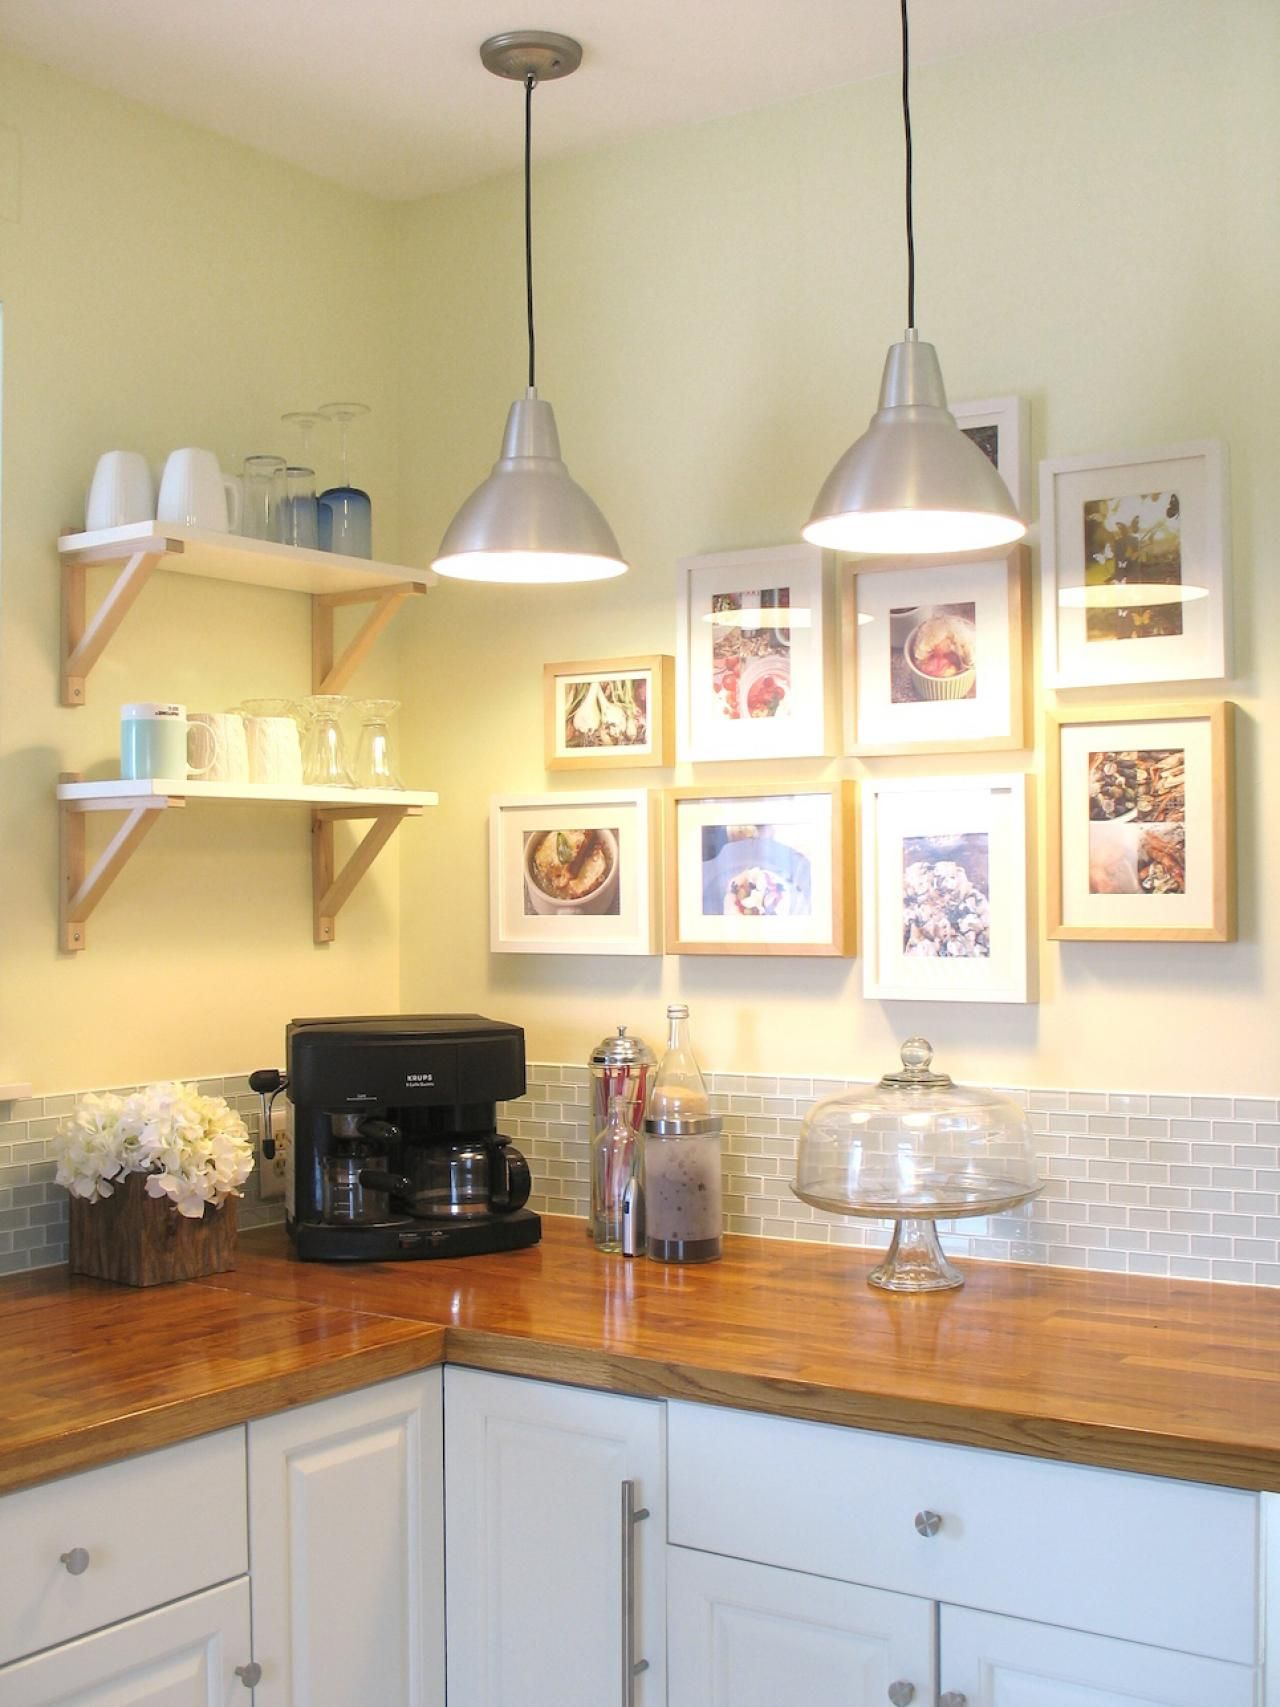 Painting Kitchen Cabinet Ideas: Pictures & Tips From | Display Ideas ...